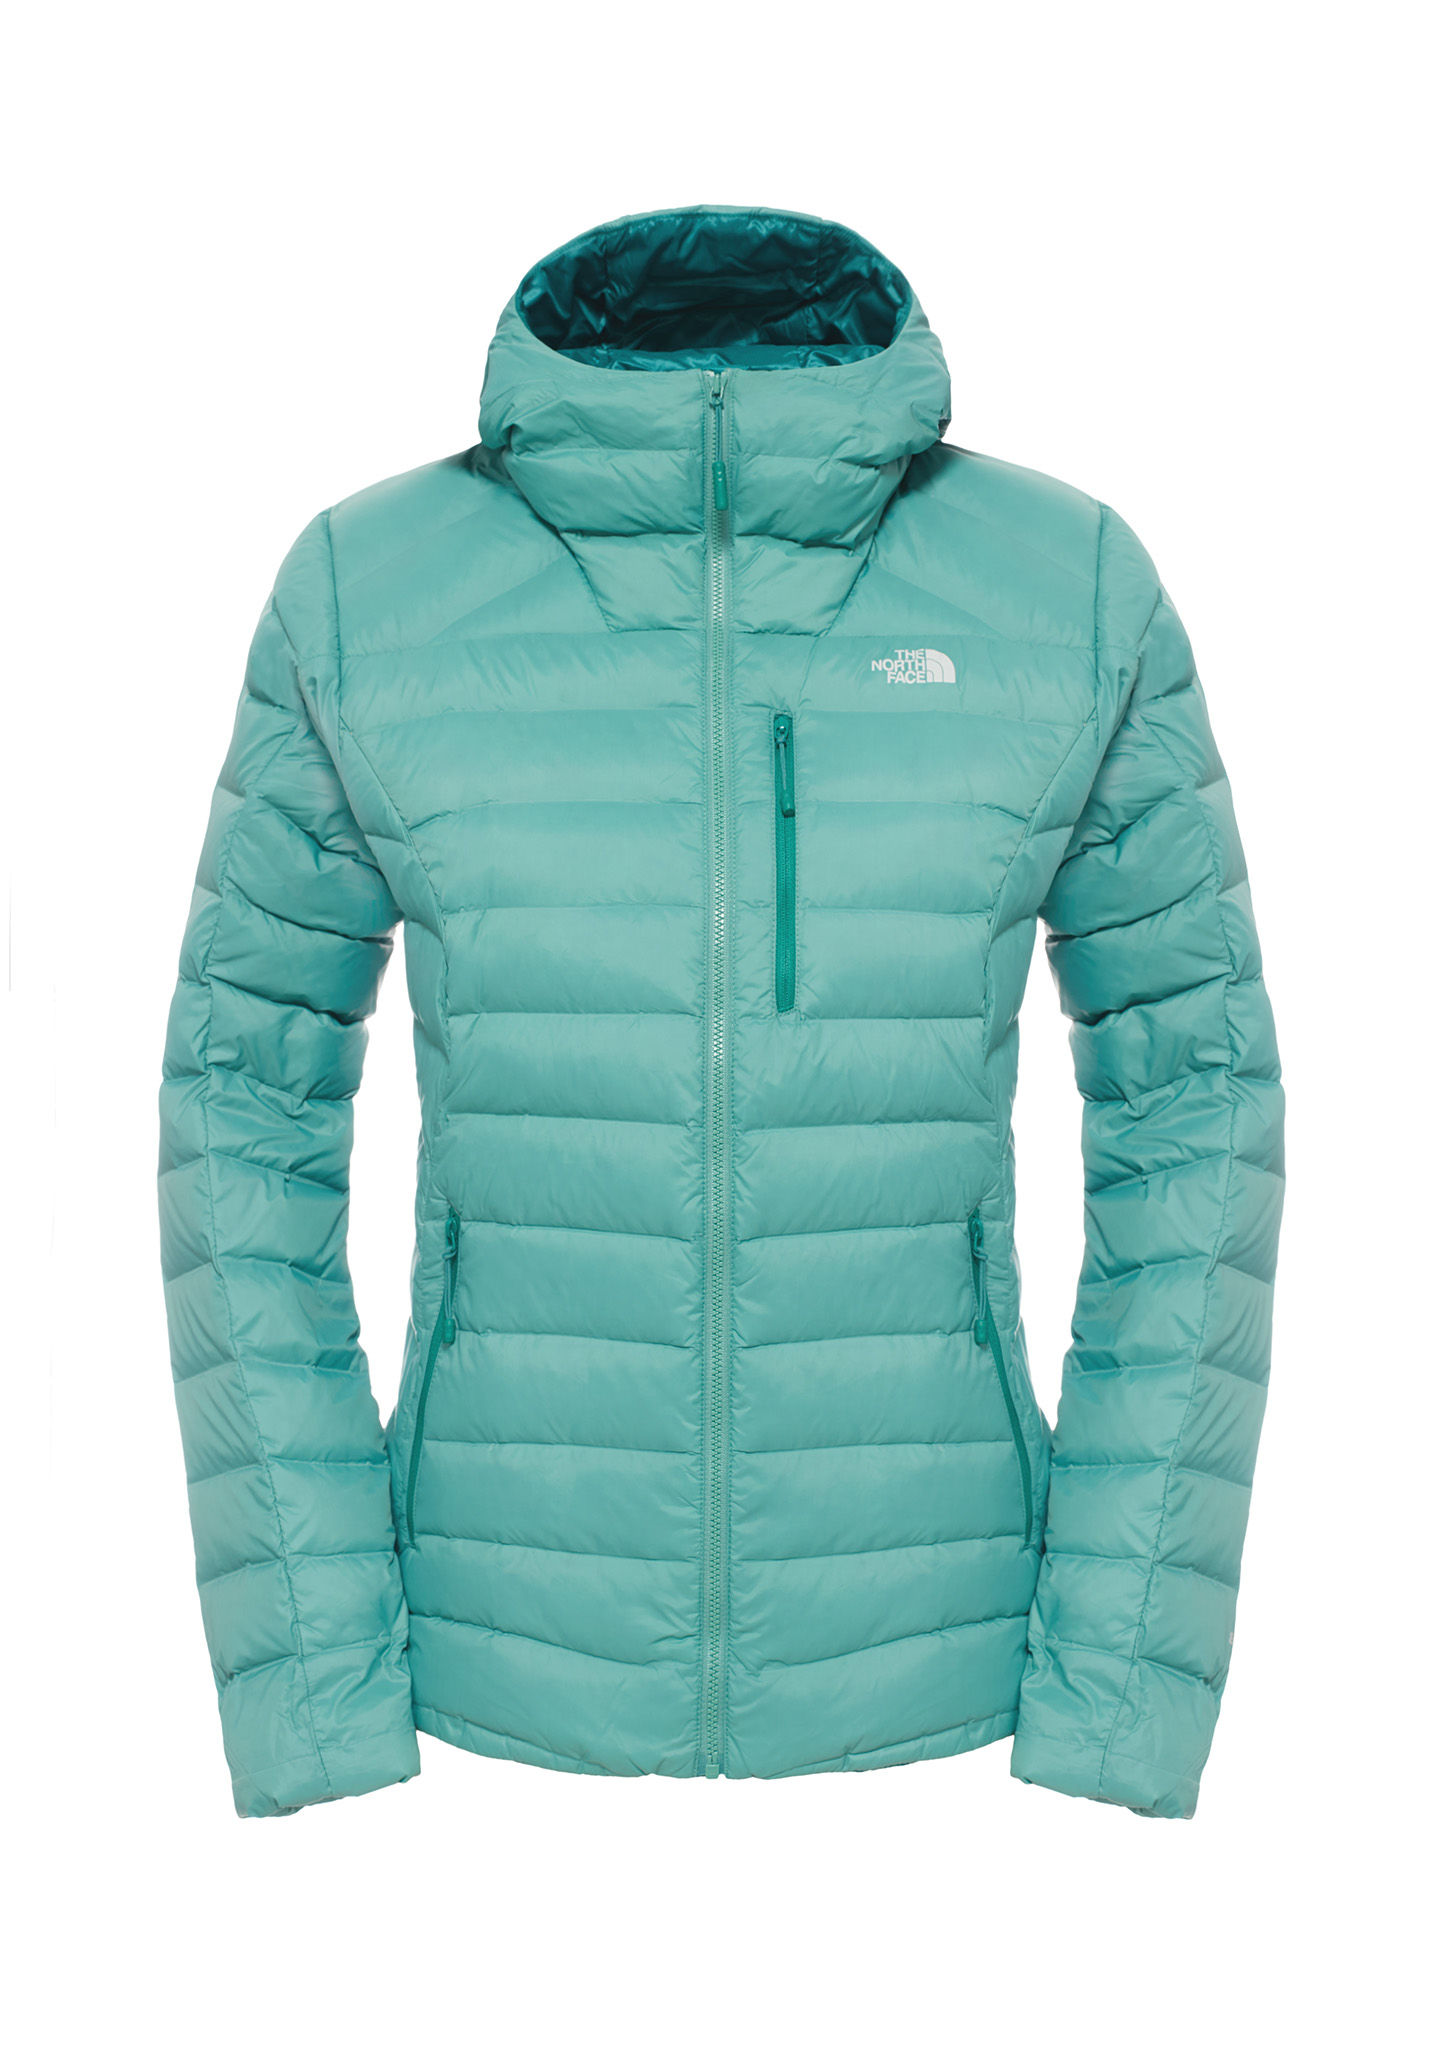 Dames North Face North Face Dames Jassen North Jassen Dames Face ZqgUF6xw